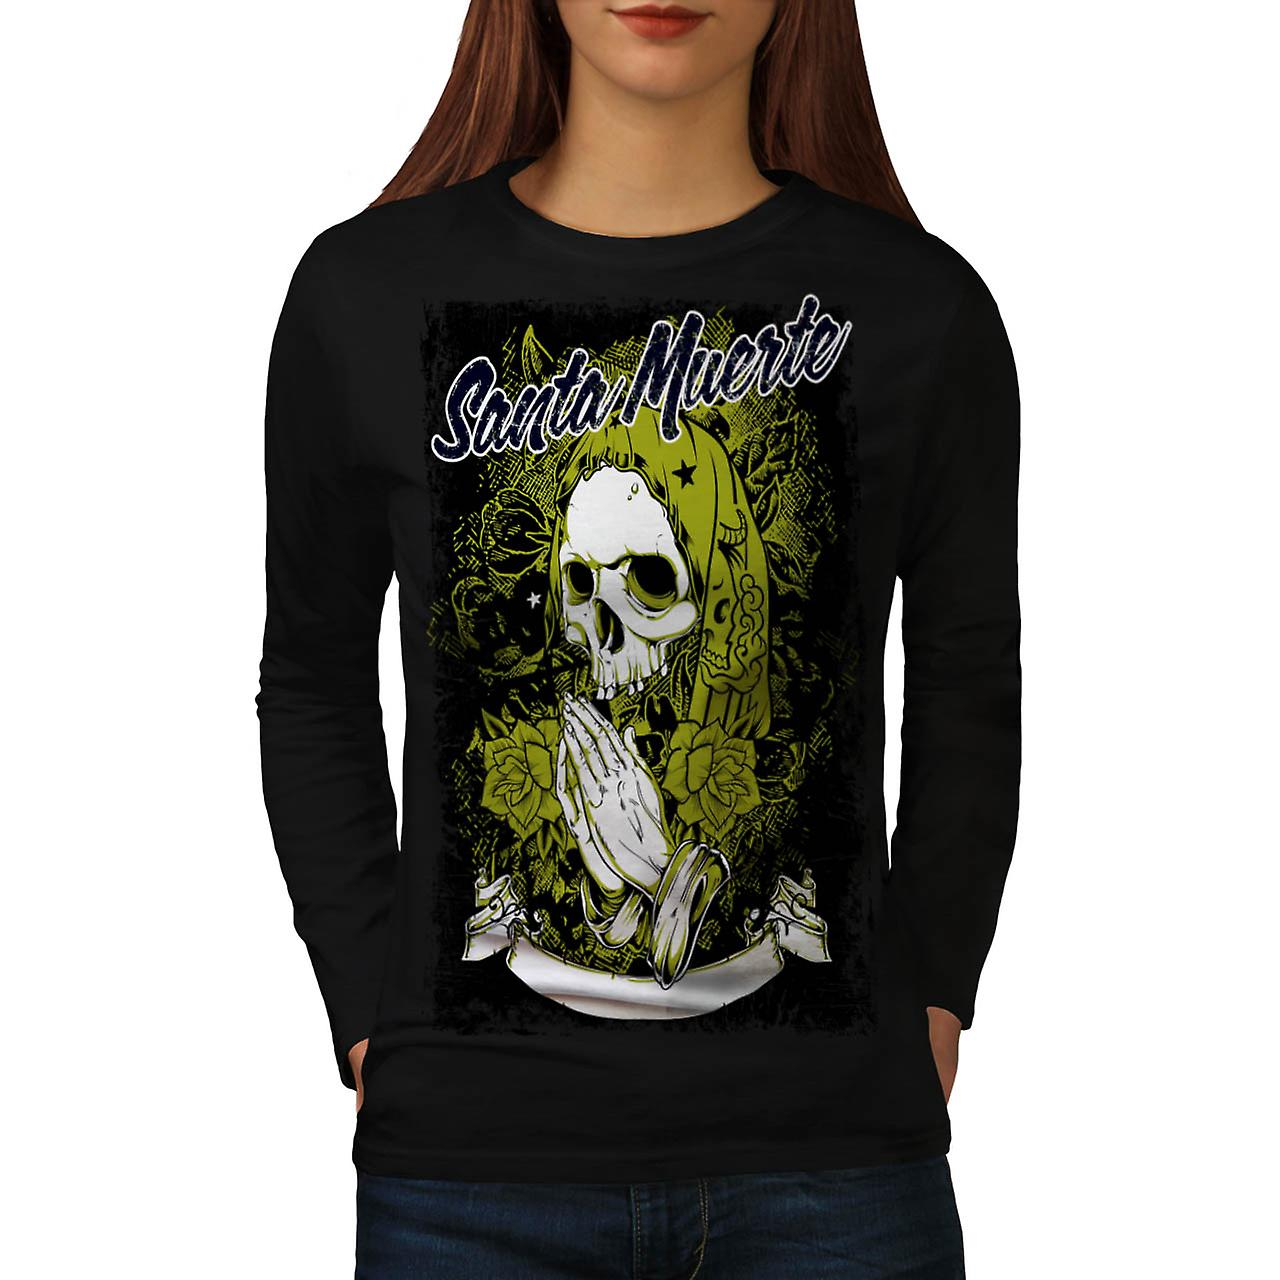 Santa Muerte Skull Death Rage Women Black Long Sleeve T-shirt | Wellcoda